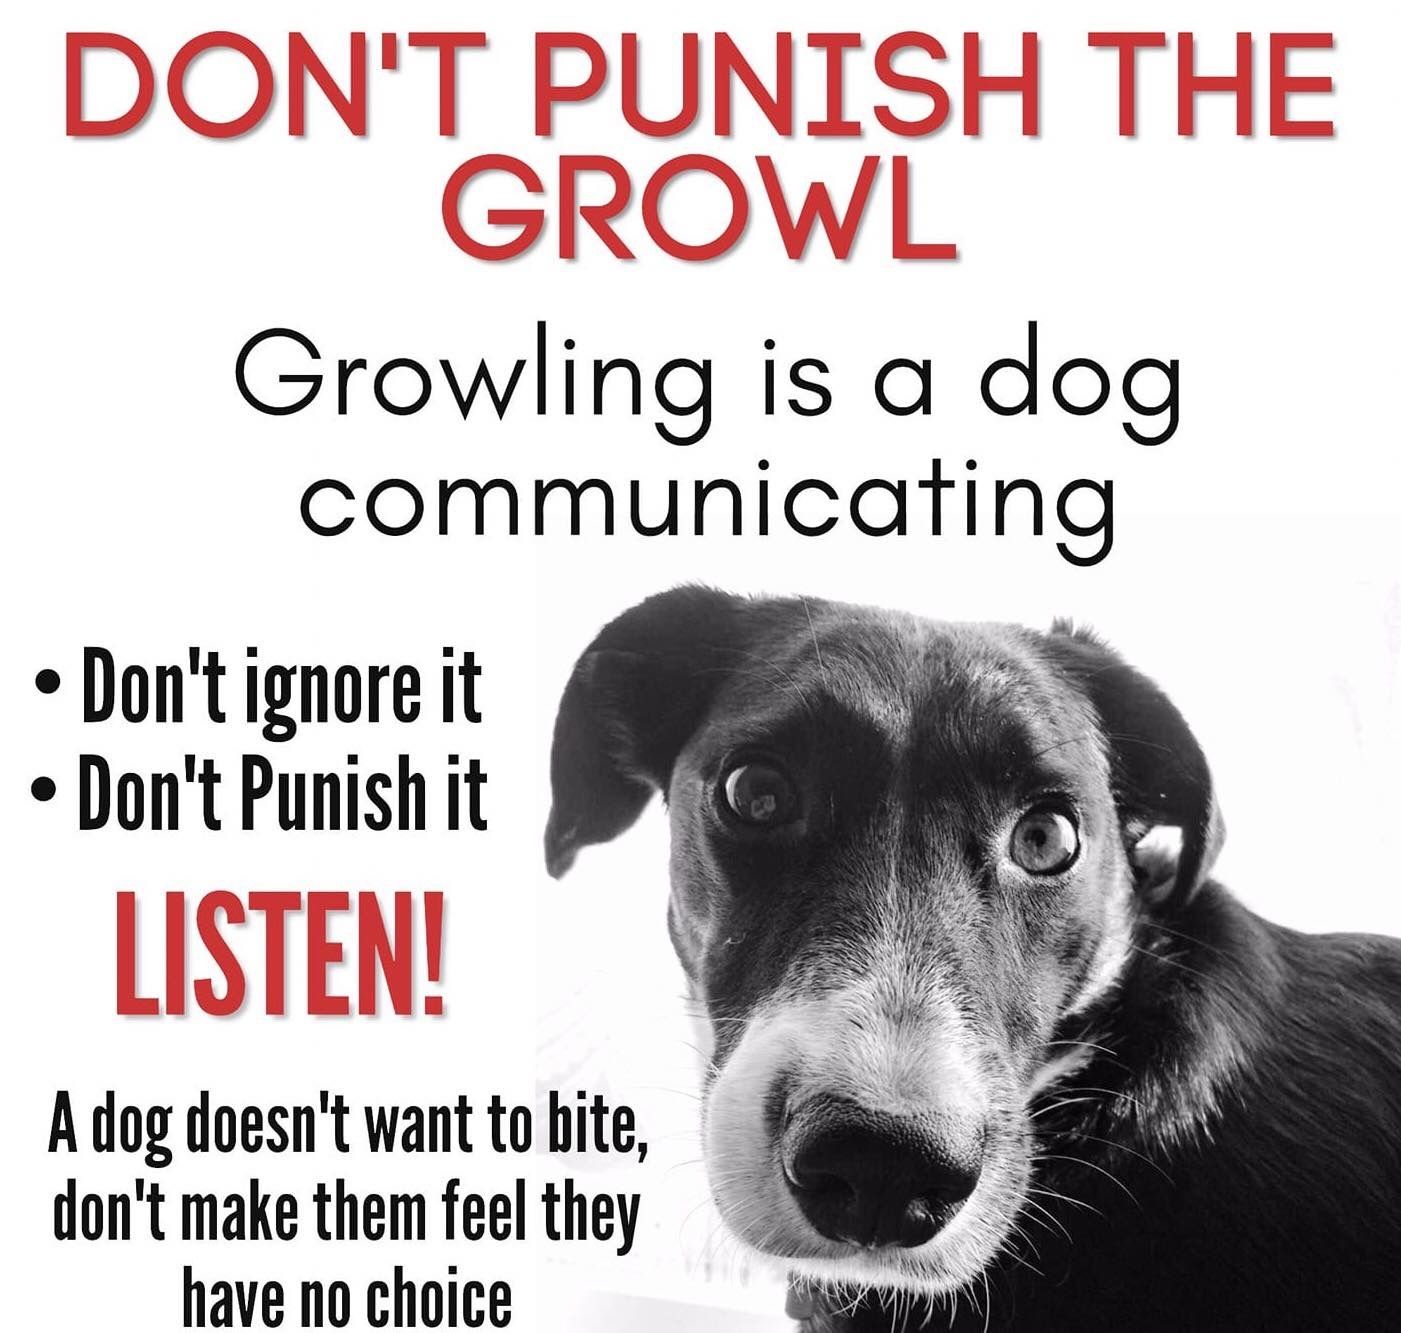 Pin by Xander on Puppers and Doggos in 2020 Dog growling